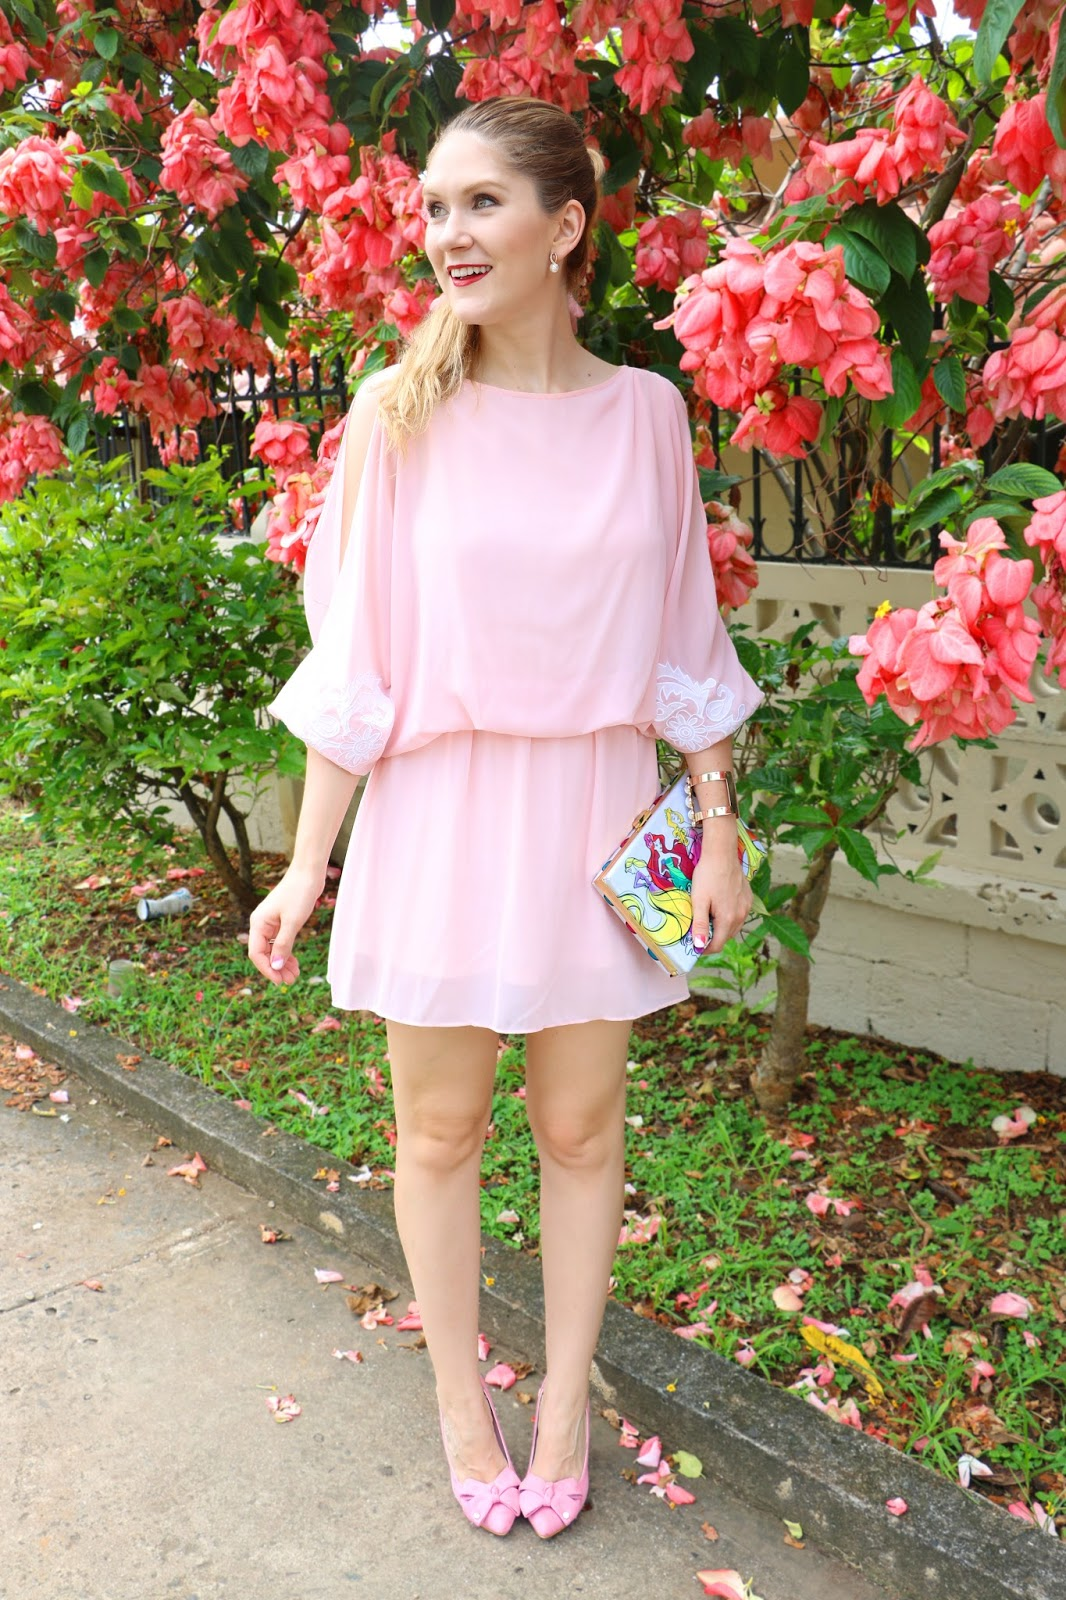 Pretty pink outfit for Spring